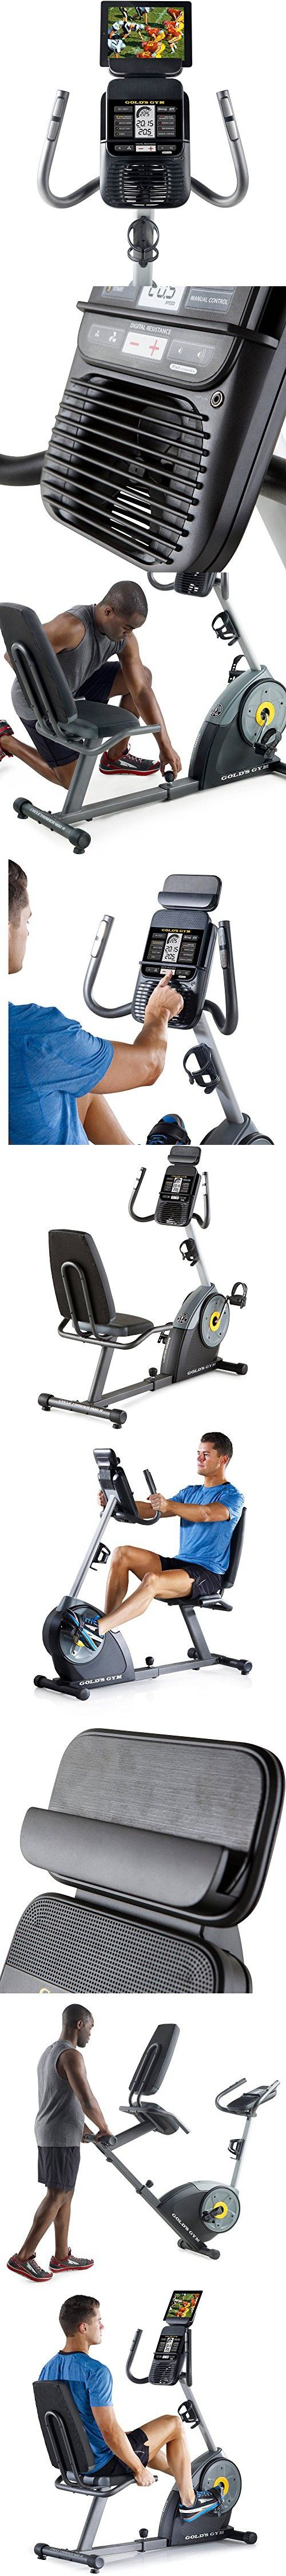 Cycle Trainer Exercise Bike with iFit Bluetooth Smart Technology Magnetic Resistance Cycling Bike Health and Fitness, Cycling Equipment, Cardio Training Home Workout Ergonomic pedals adjustable Straps